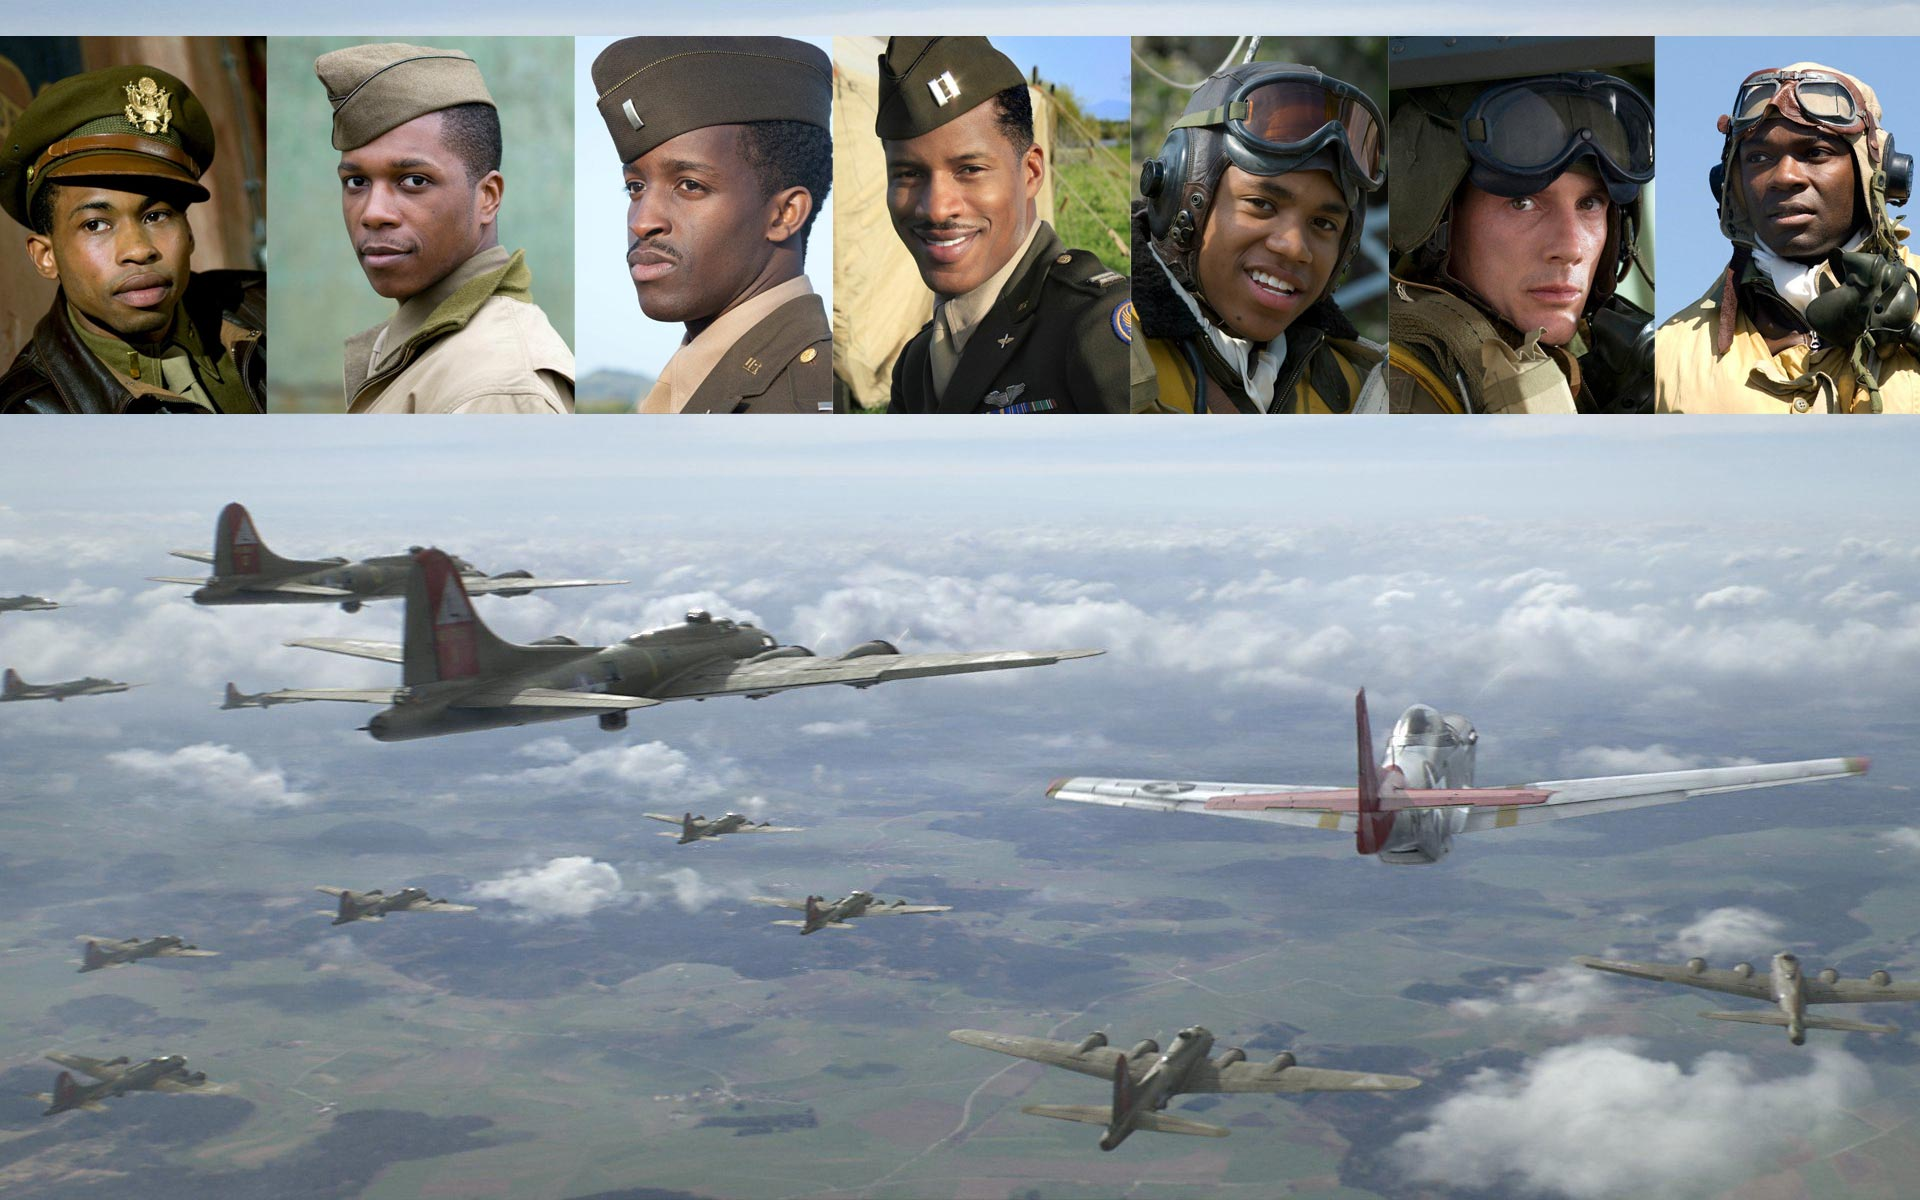 Third RED TAILS Movie Trailer - FilmoFilia